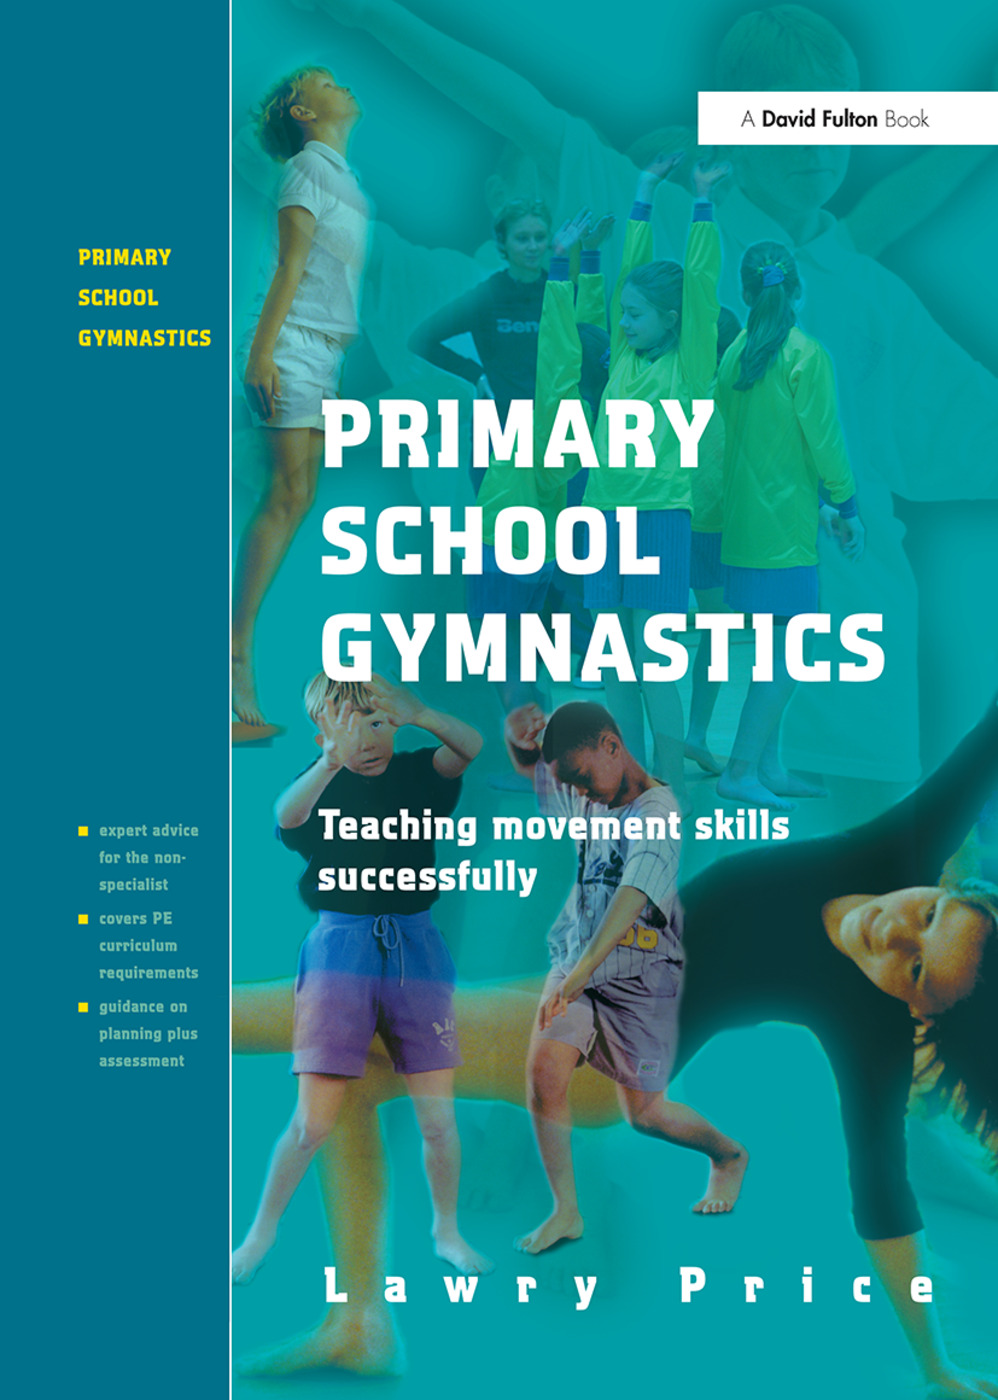 Primary School Gymnastics: Teaching Movement Action Successfully book cover